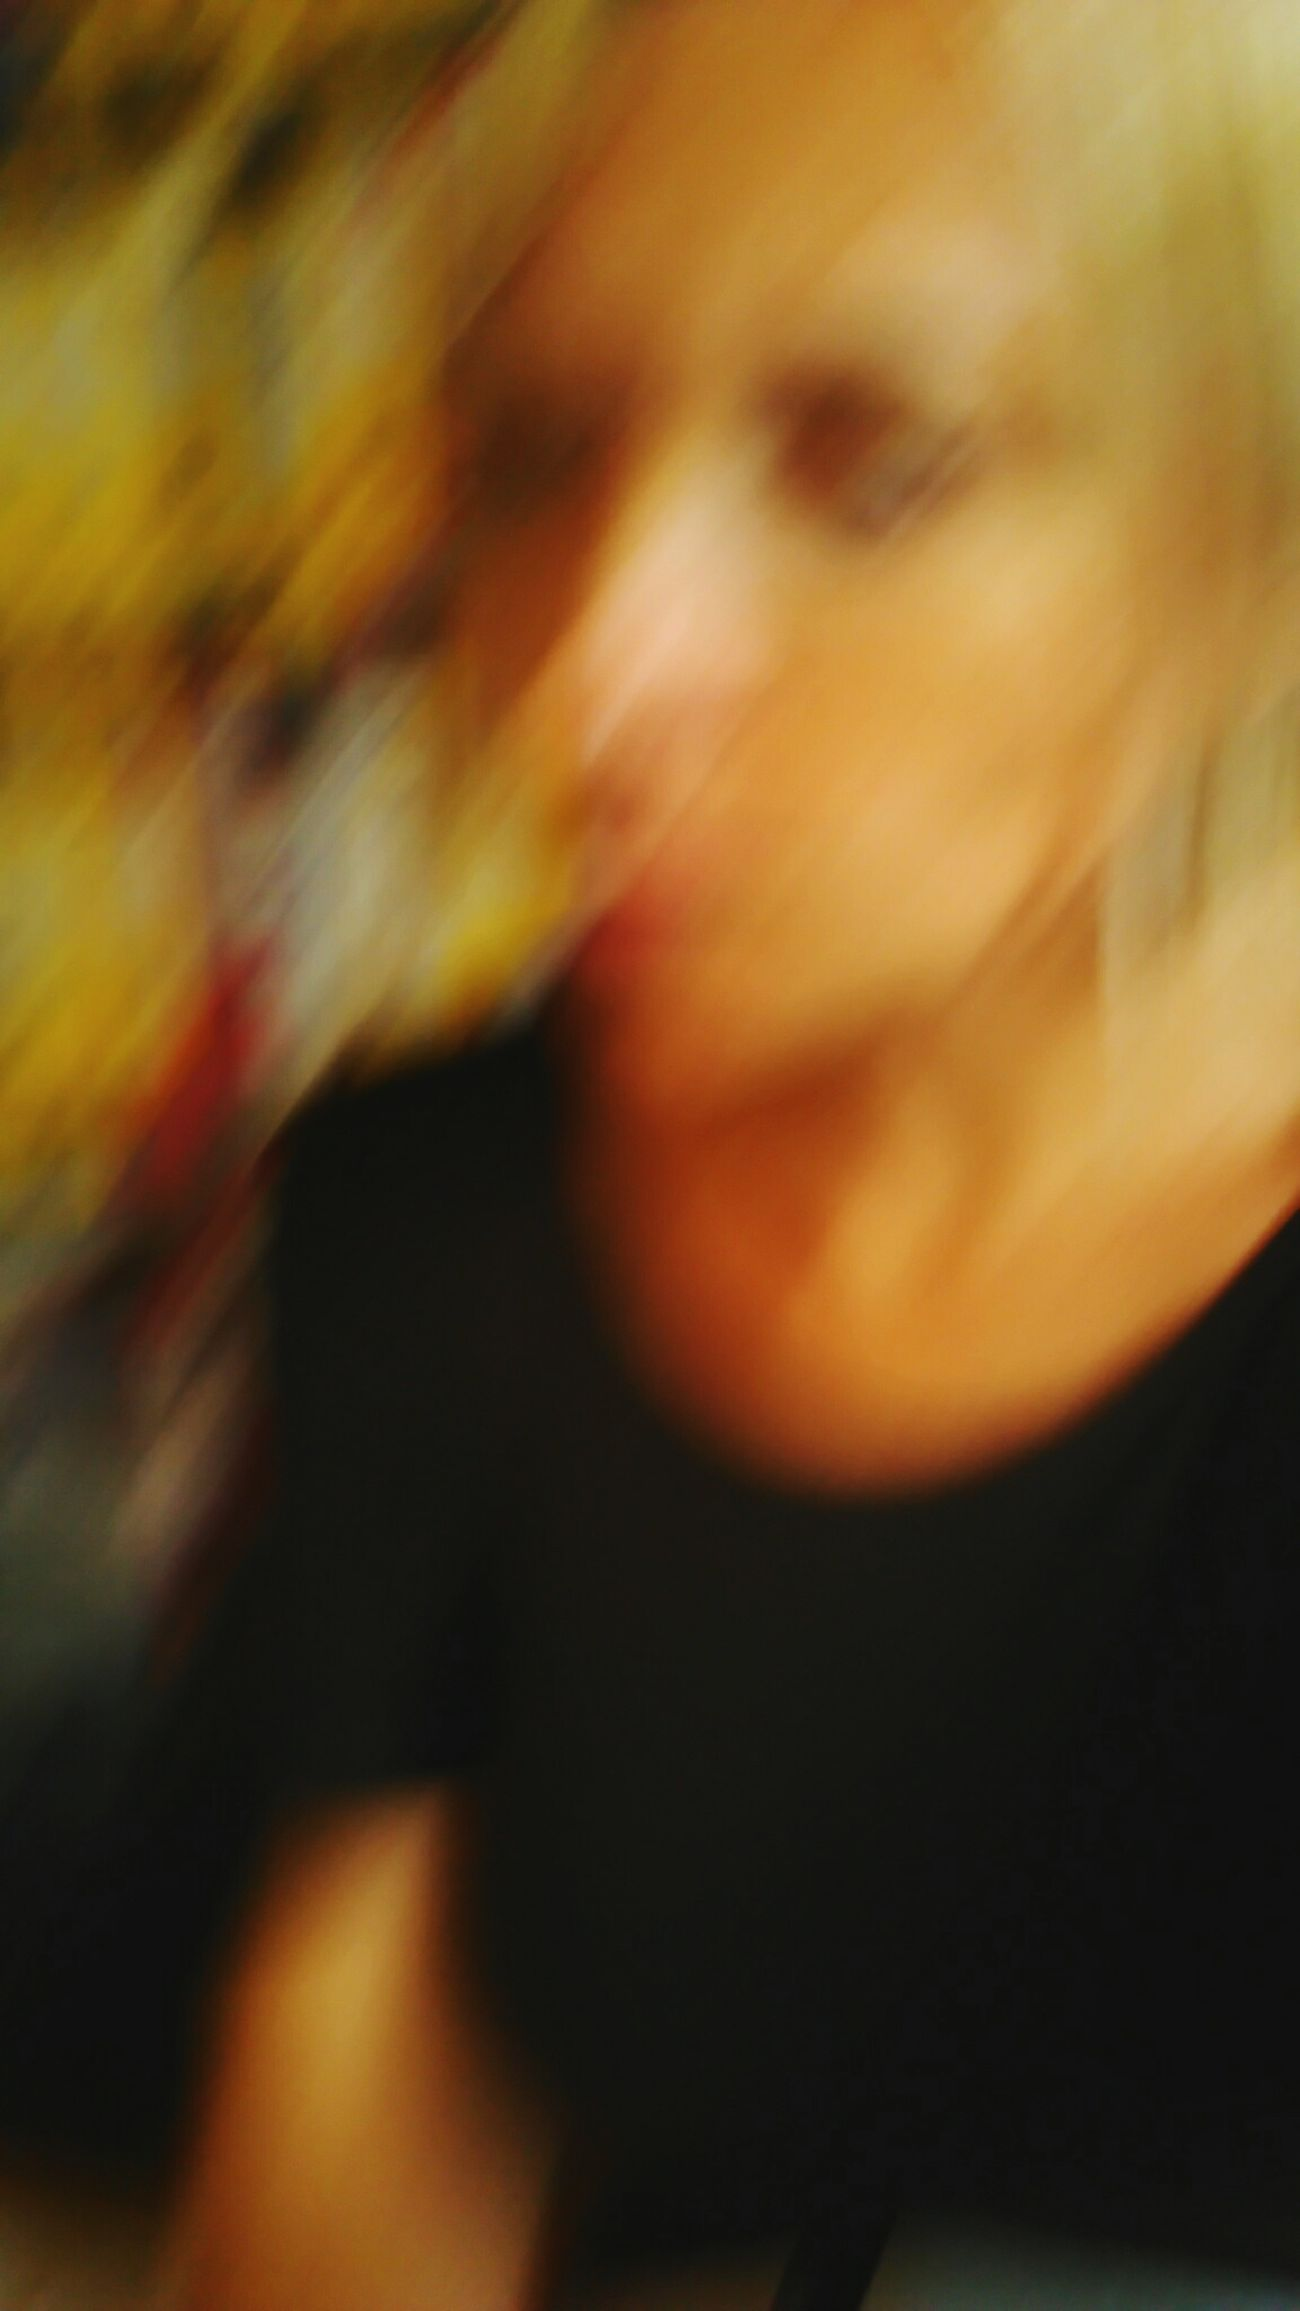 Good a day to all :) Blurred Motion Defocused Exceptional Photographs Hello World In Motion My Unique Style My Year My View One Person Real People Self Portait Thats Me  Tuesday_selfportrait_nonchallenge